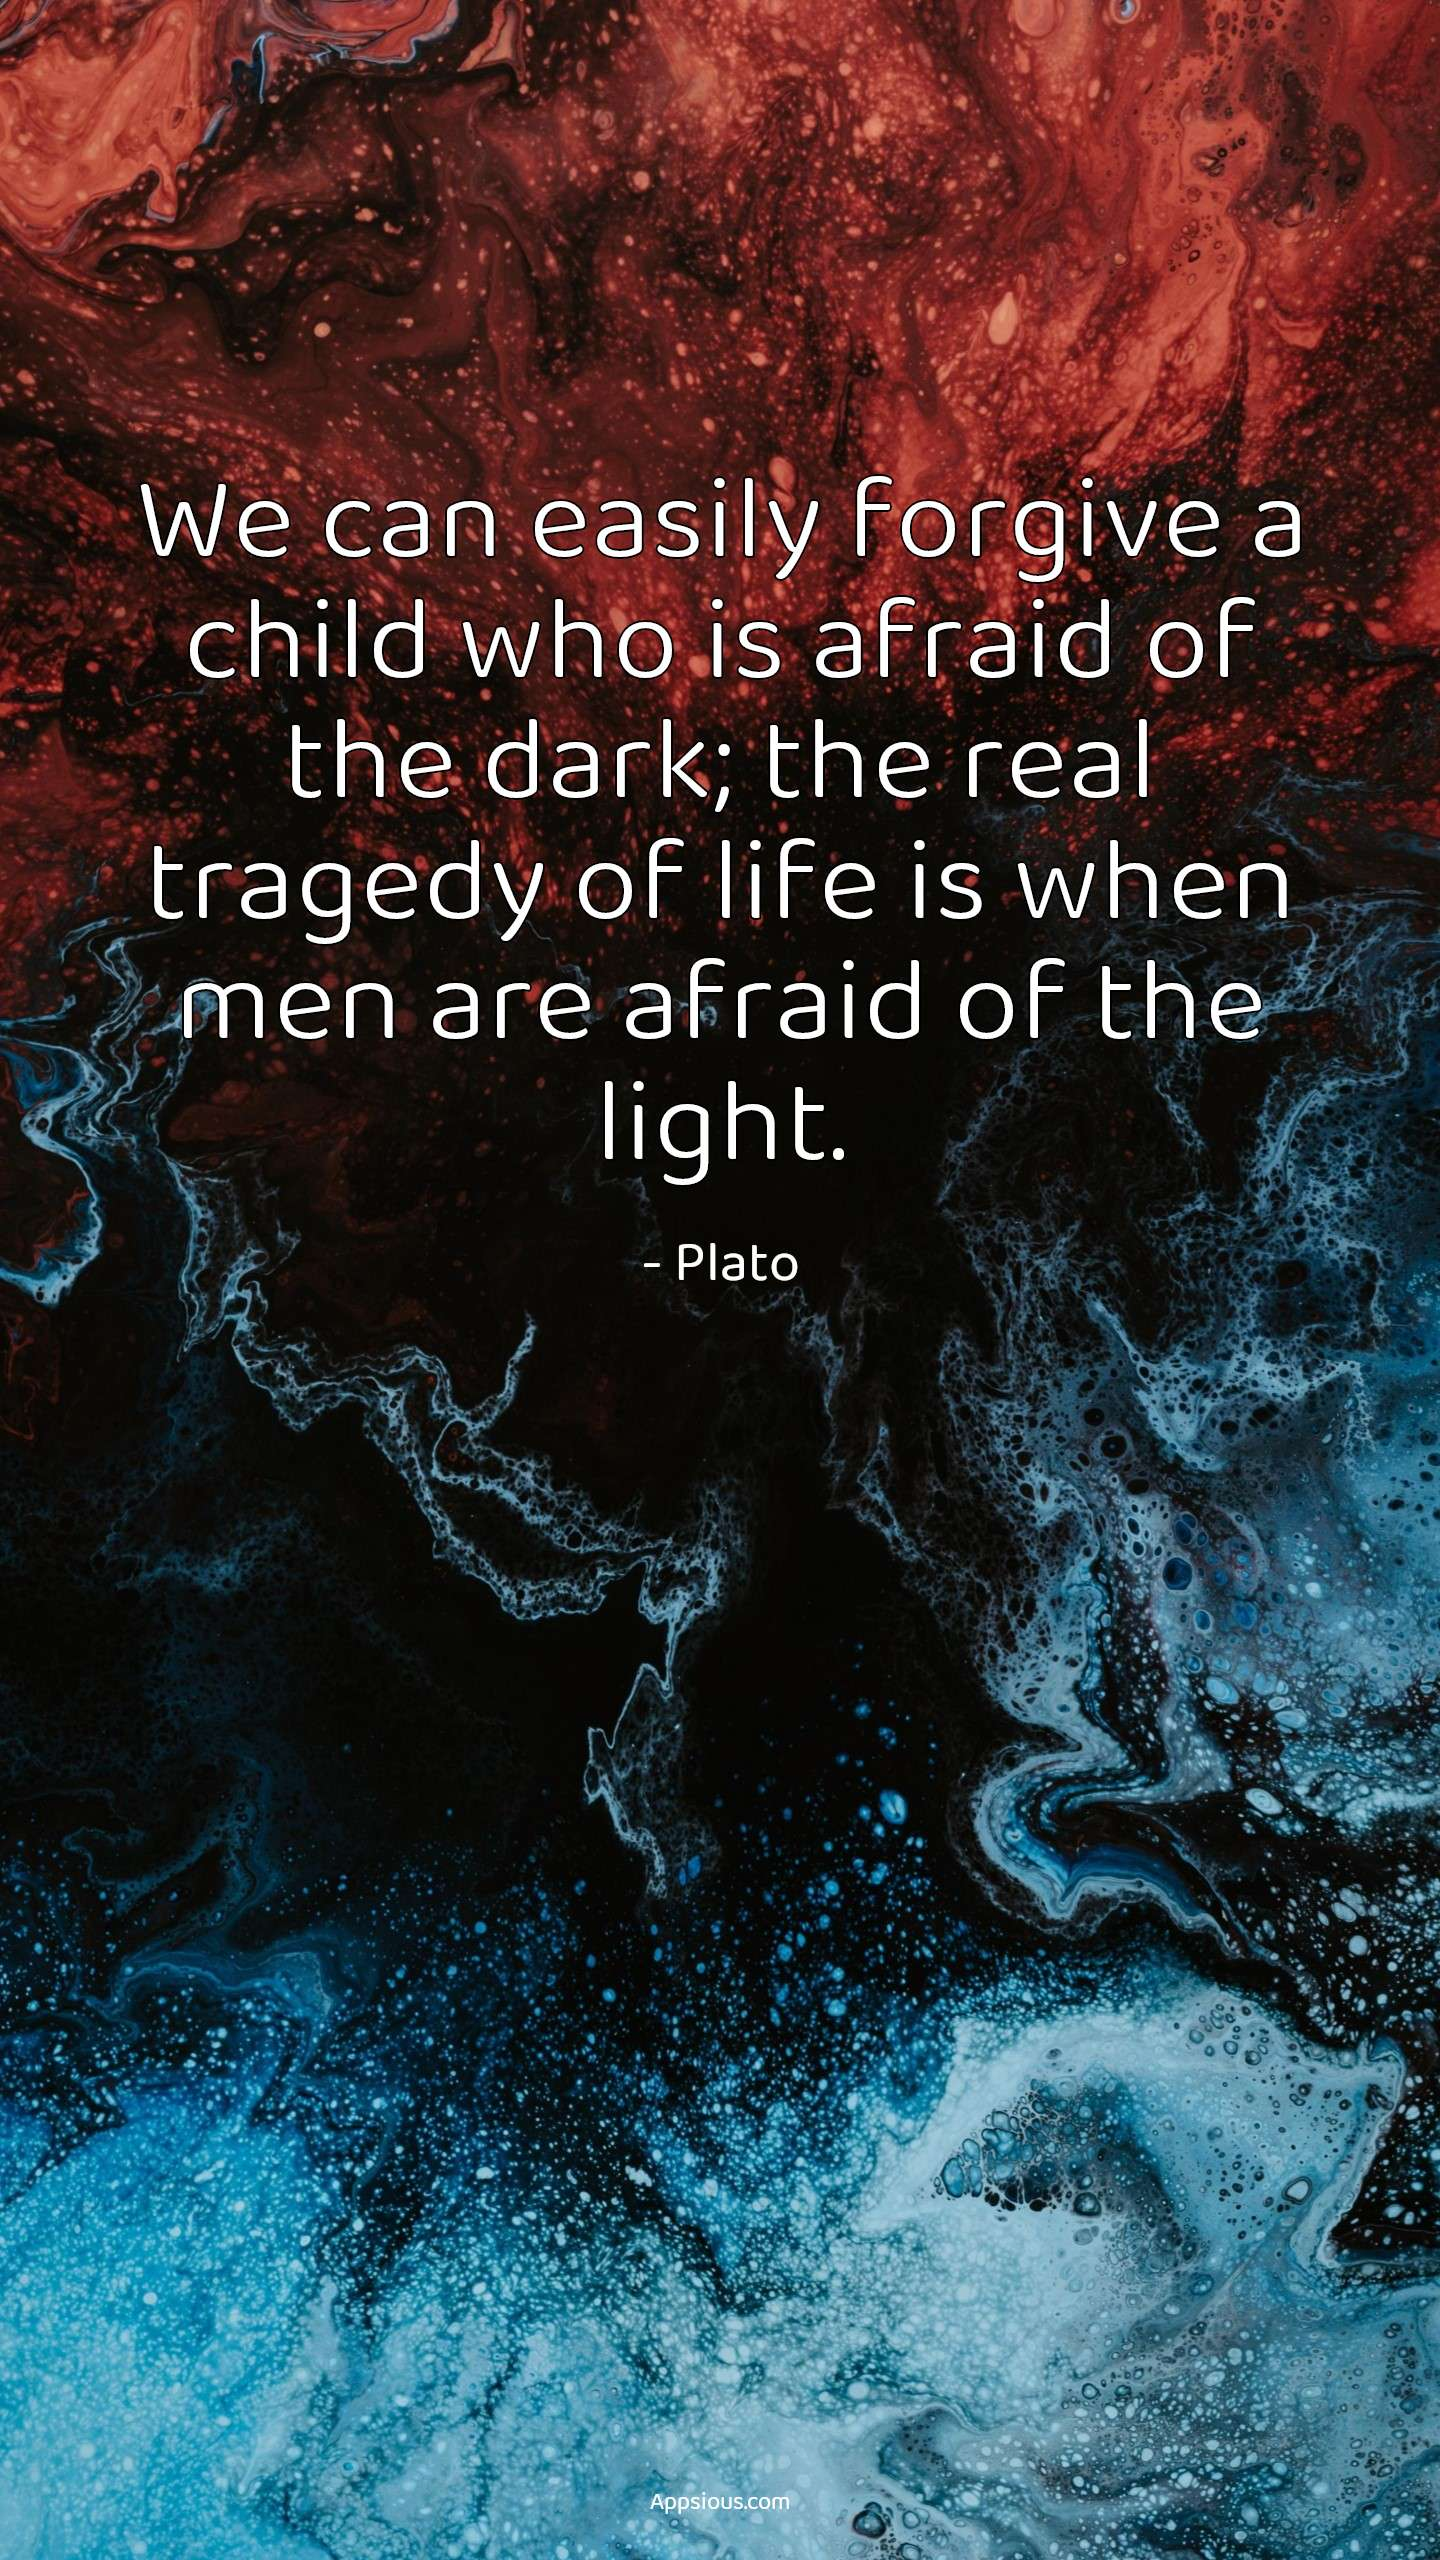 We can easily forgive a child who is afraid of the dark; the real tragedy of life is when men are afraid of the light.